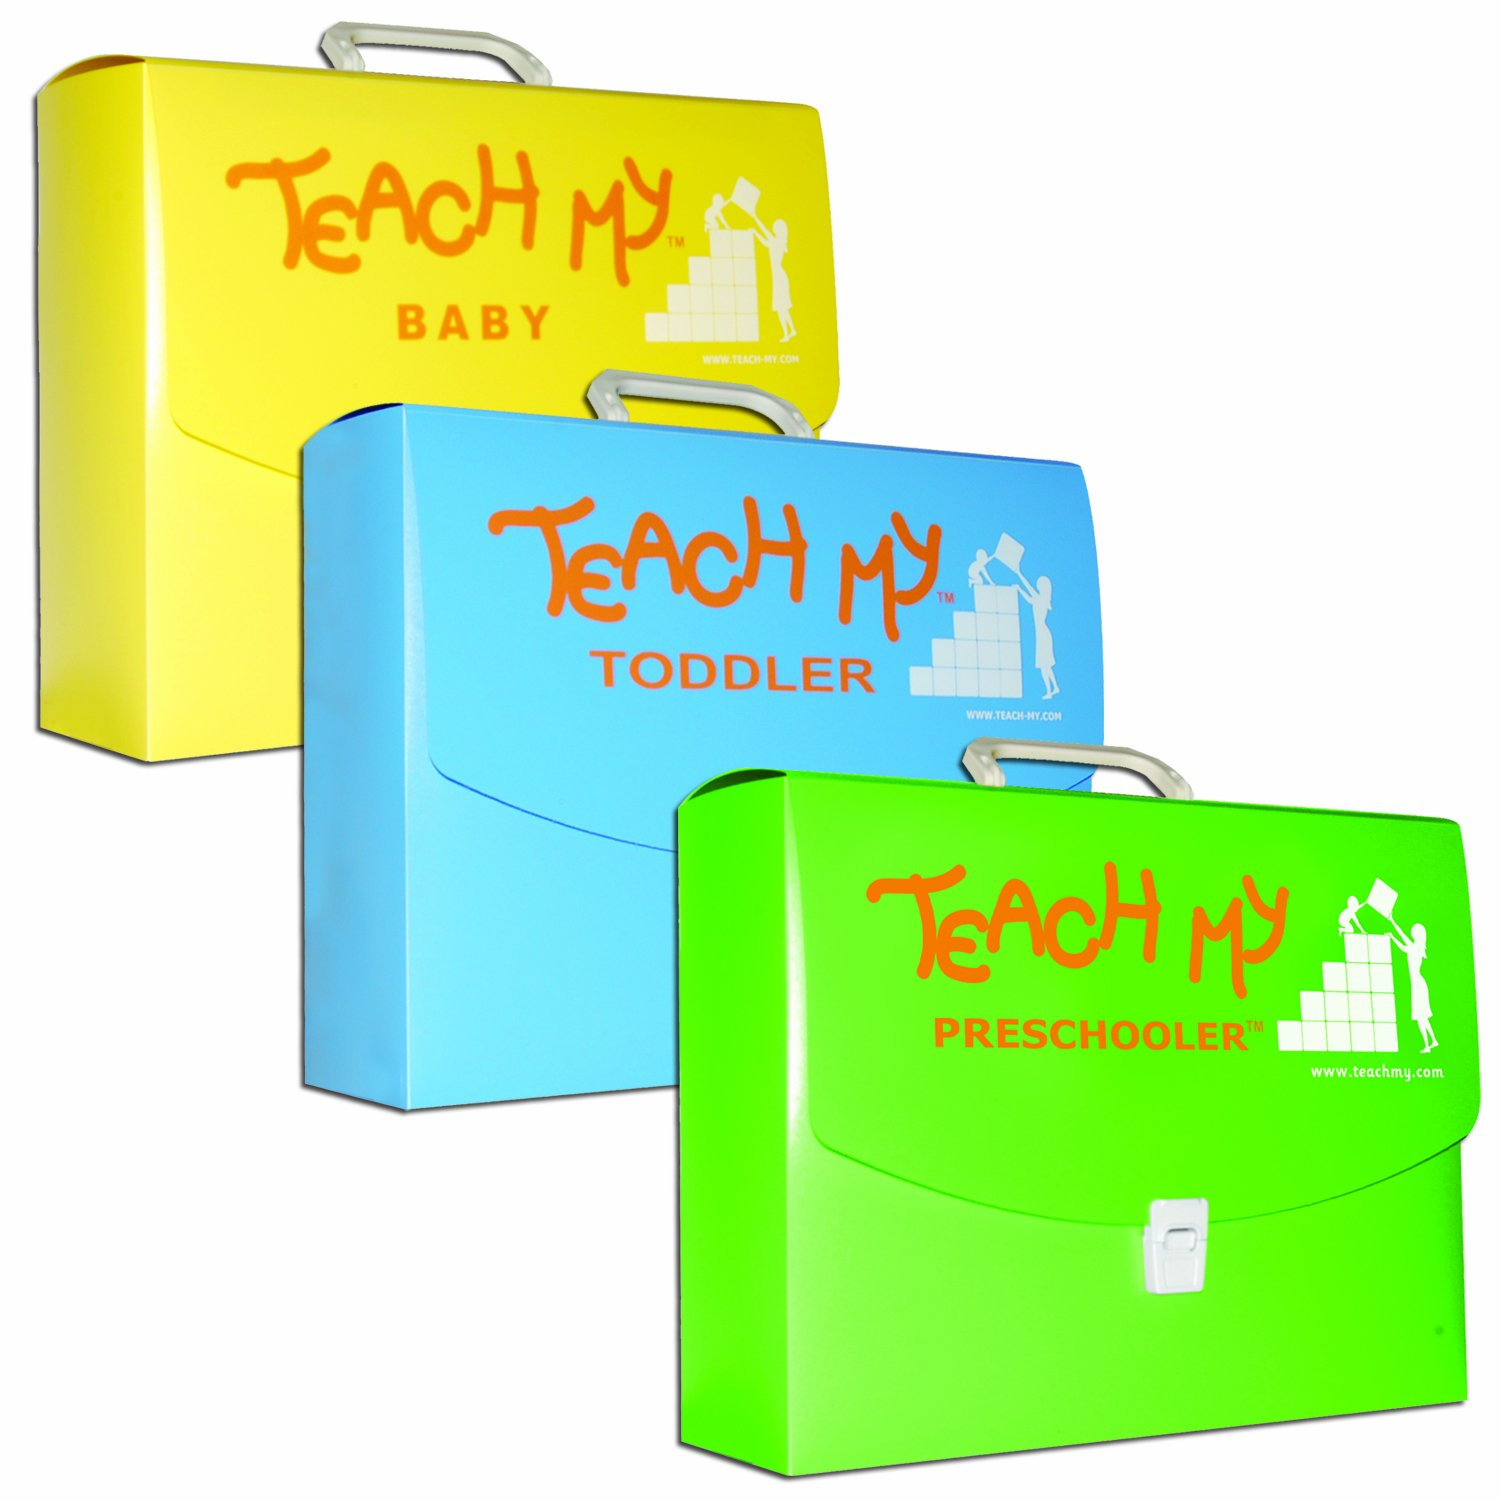 Amazon.com: Teach My Toddler Learning Kit: Toys & Games